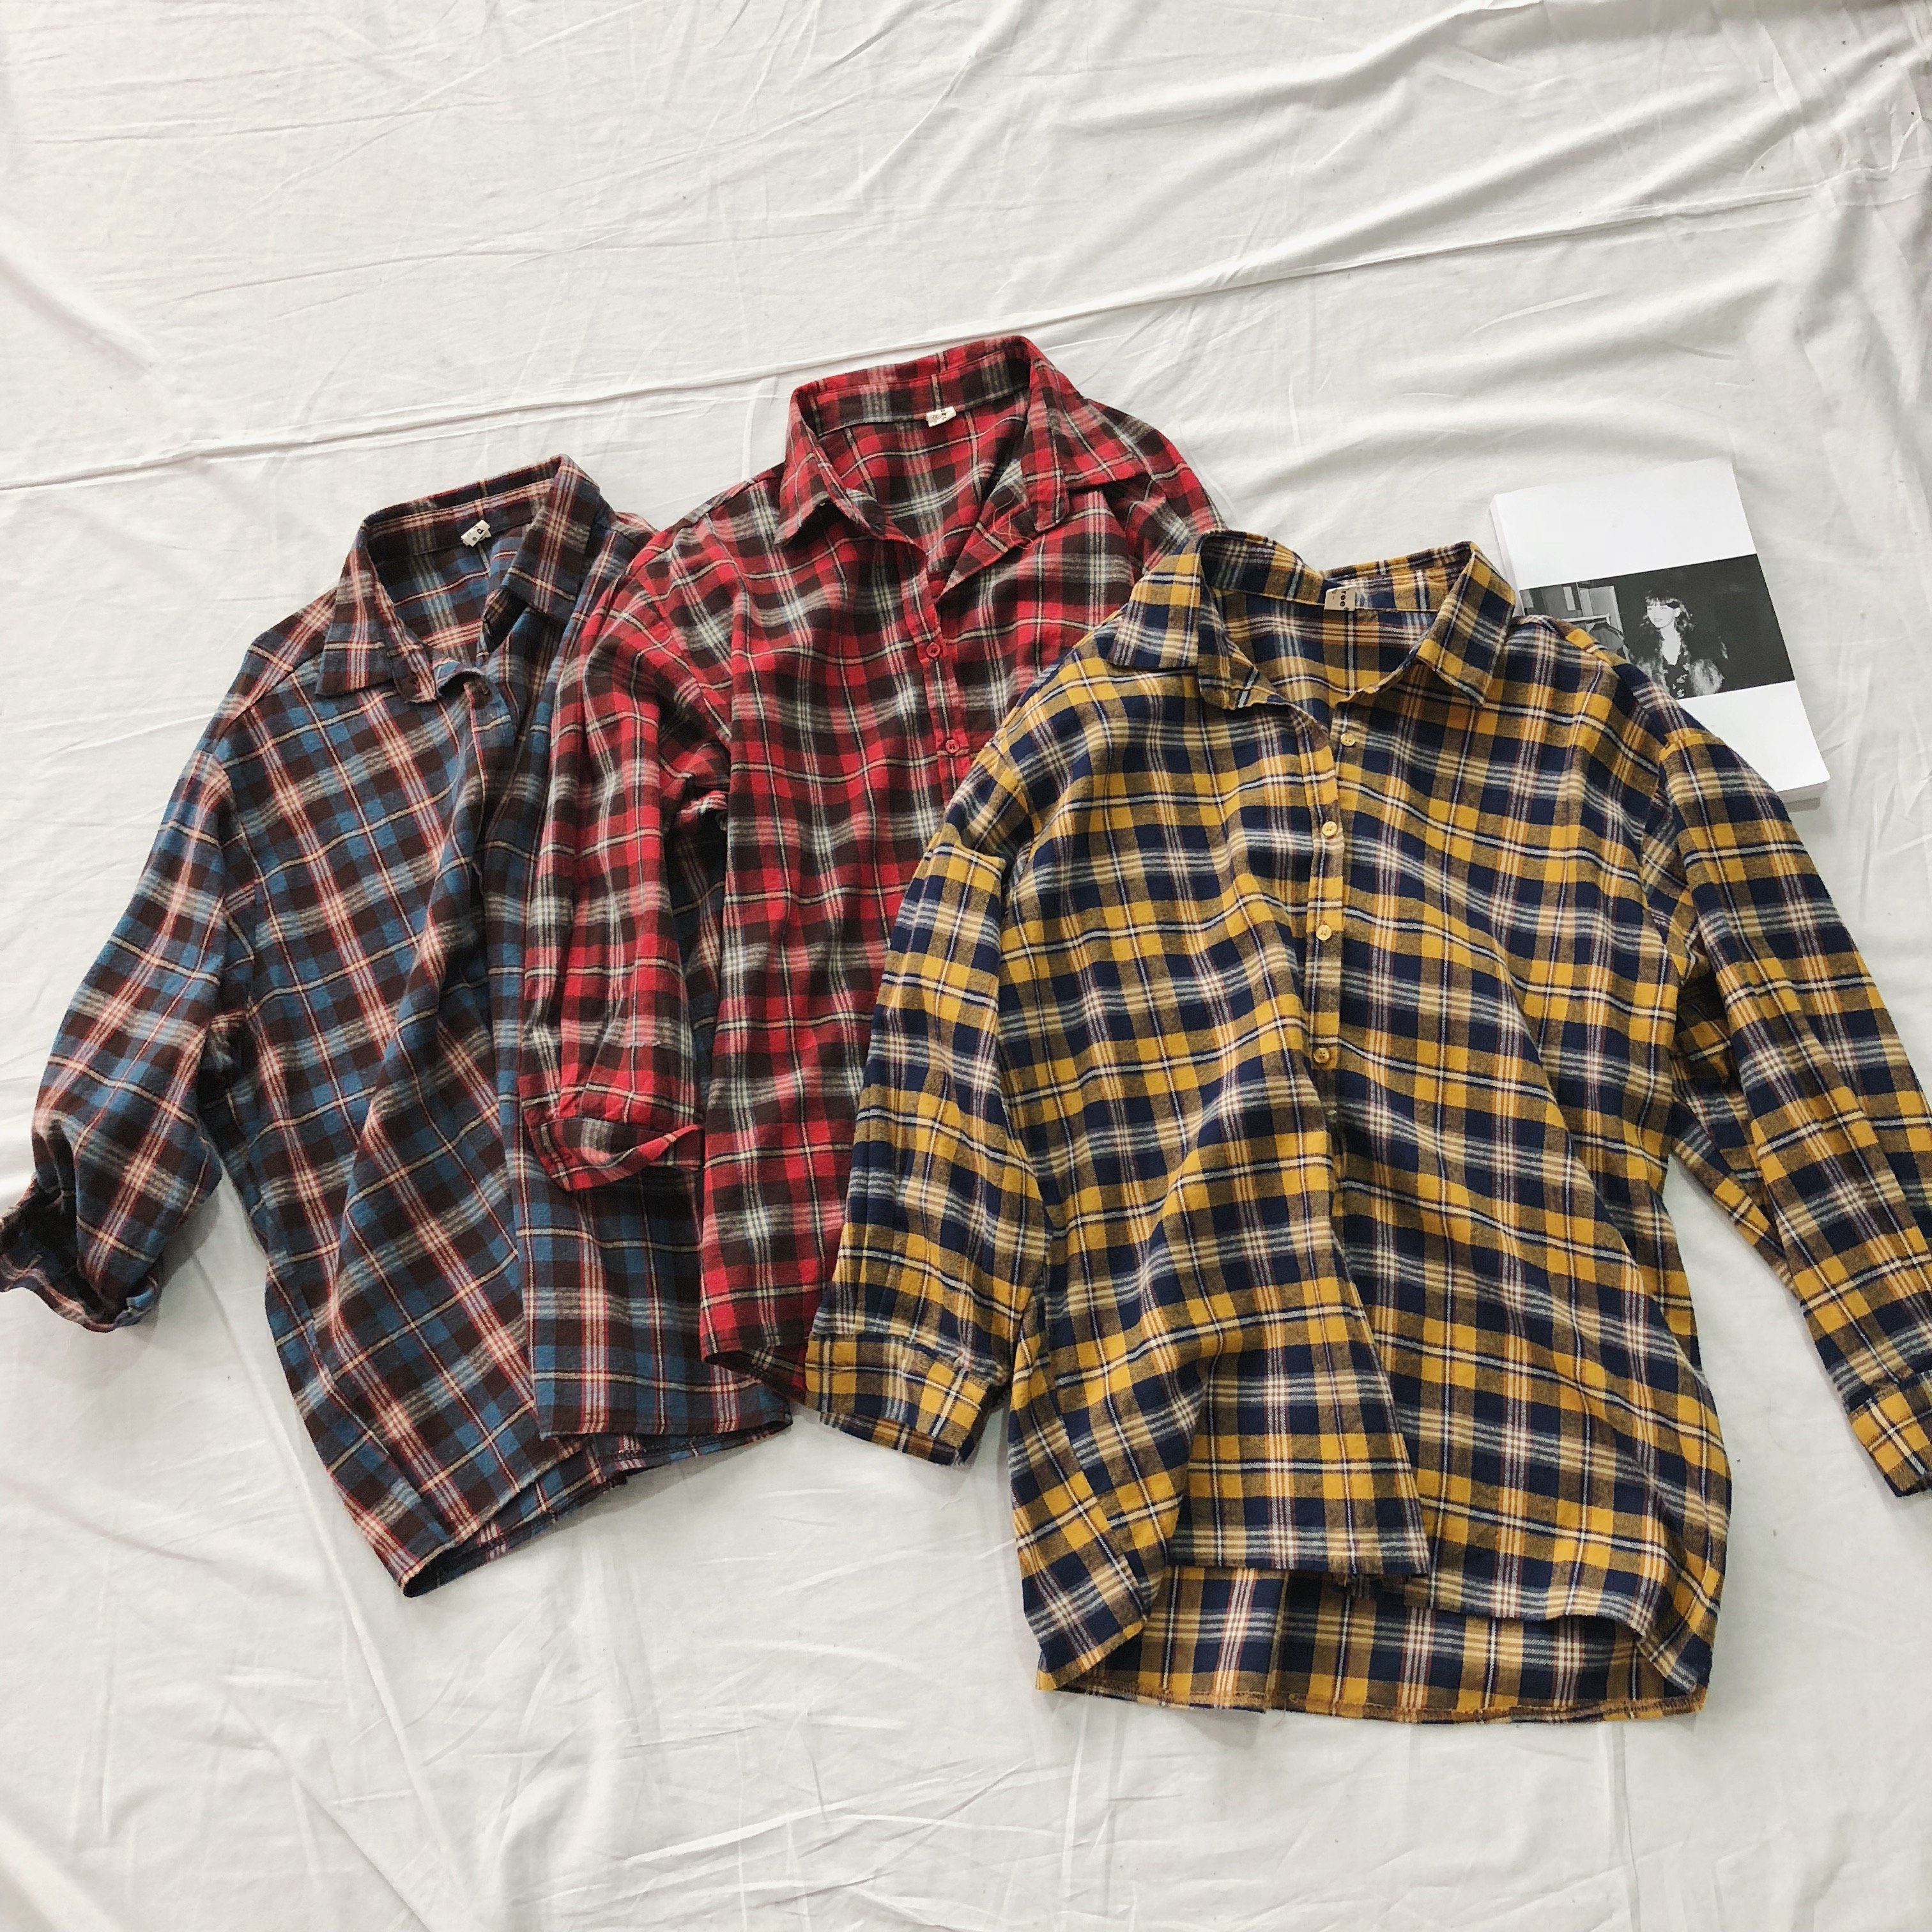 Retro Plaid Shirt Comfortable Brushed Long Sleeve Loose Wild College Shirt